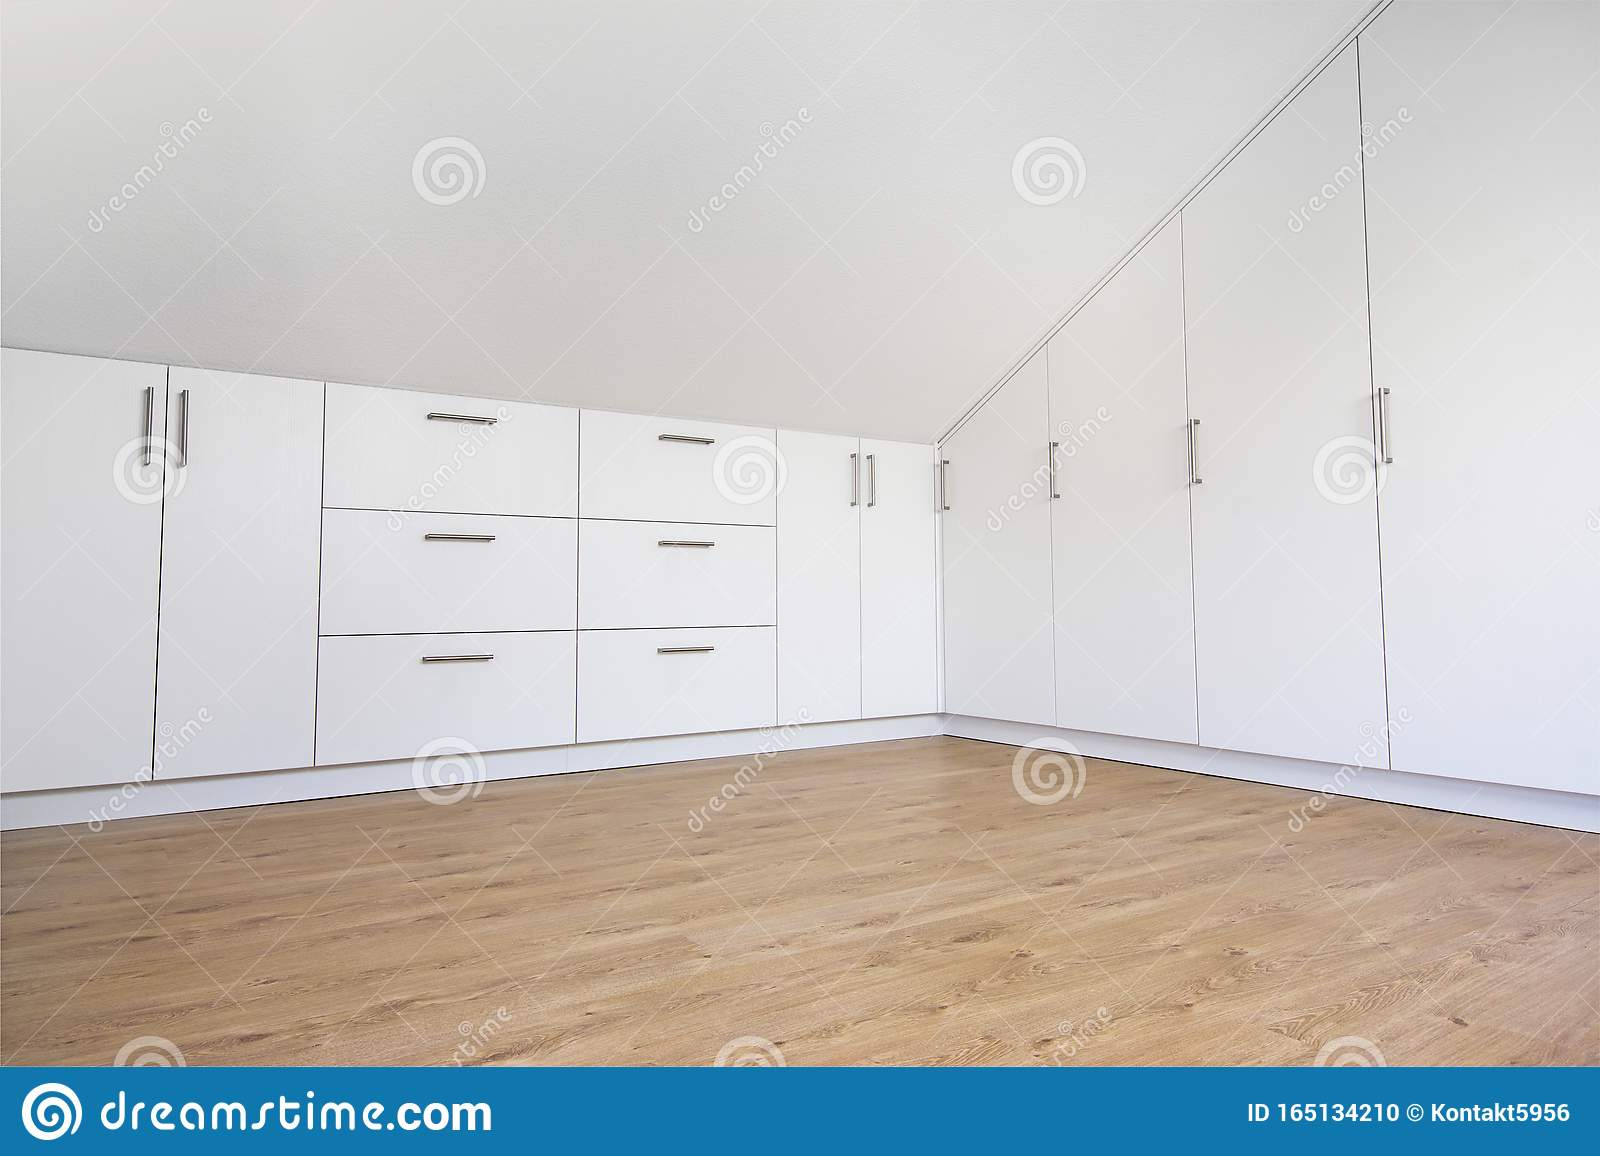 Schrank Modern Modern White Built-in Wardrobe With Laminate Floor Stock Photo - Image Of Master, Pitched: 165134210